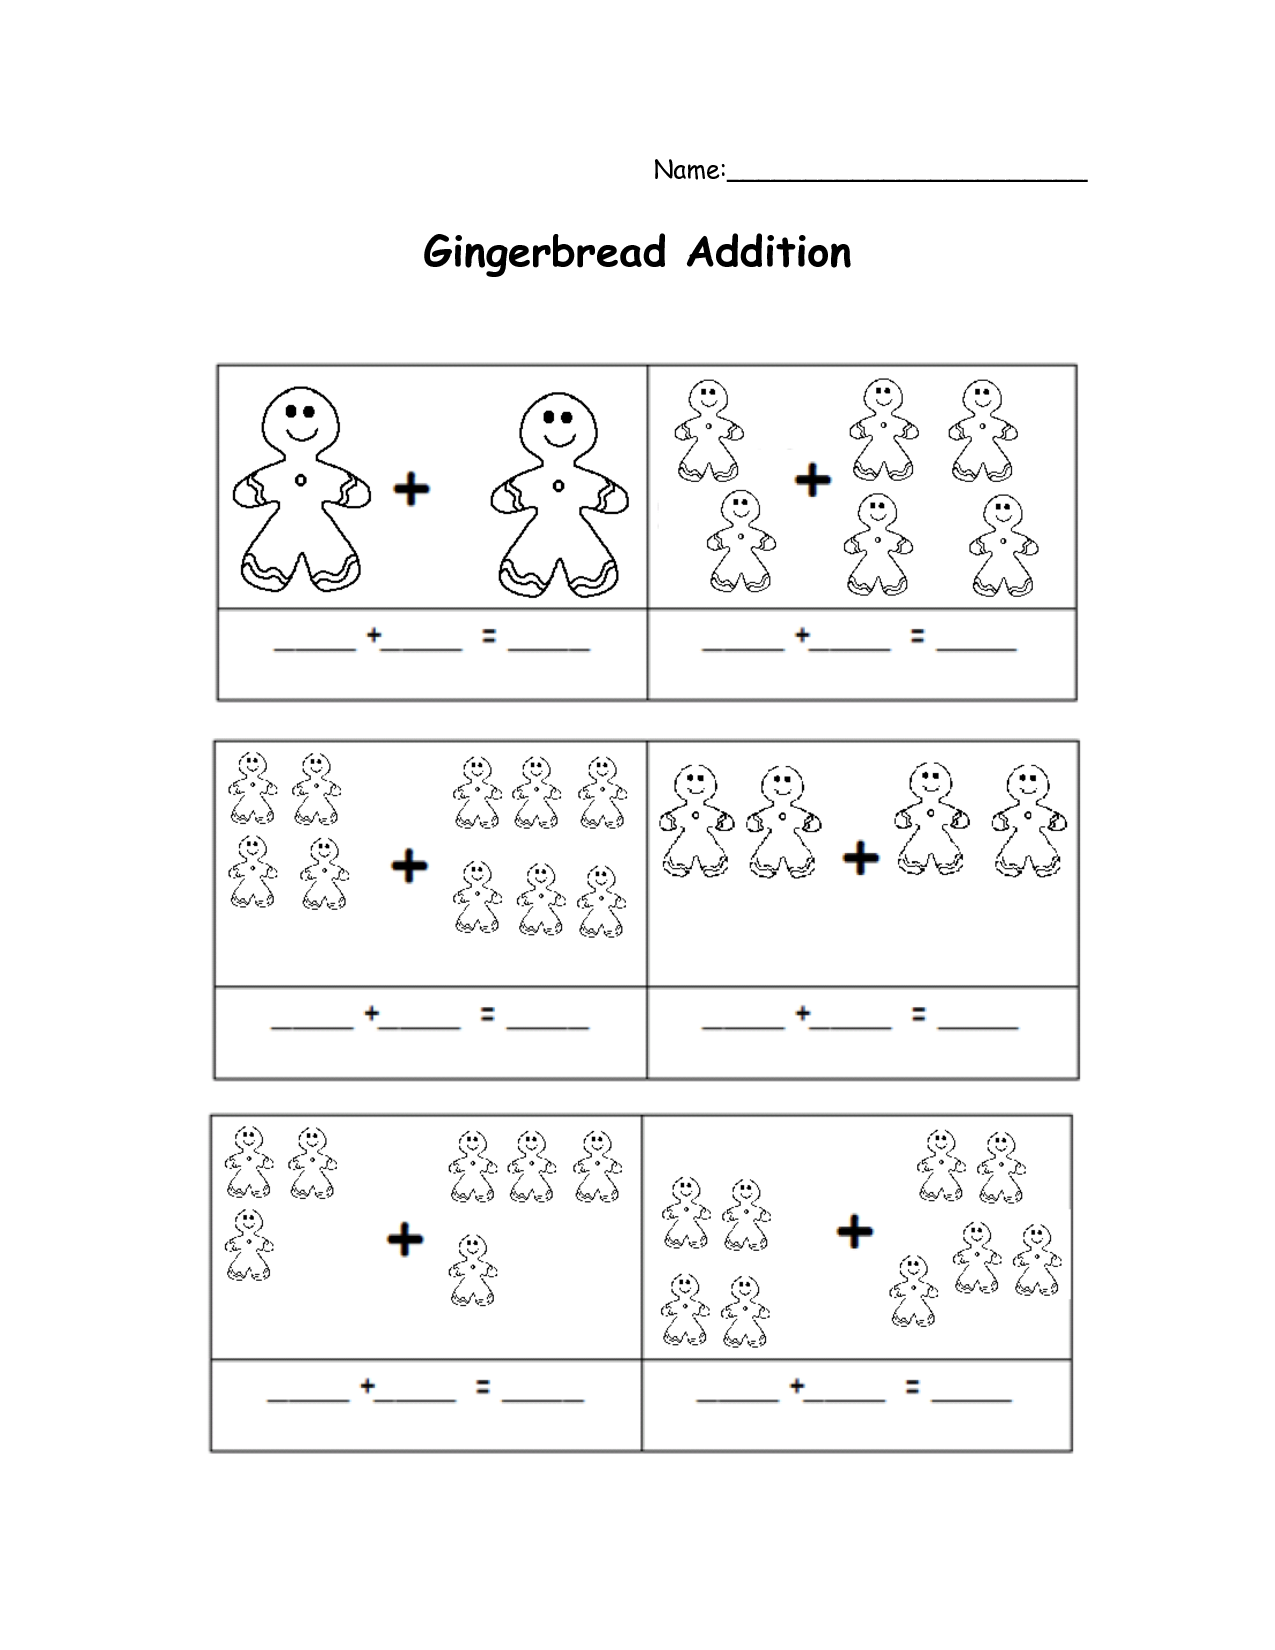 Gingerbread Math Worksheets Scope Of Work Template